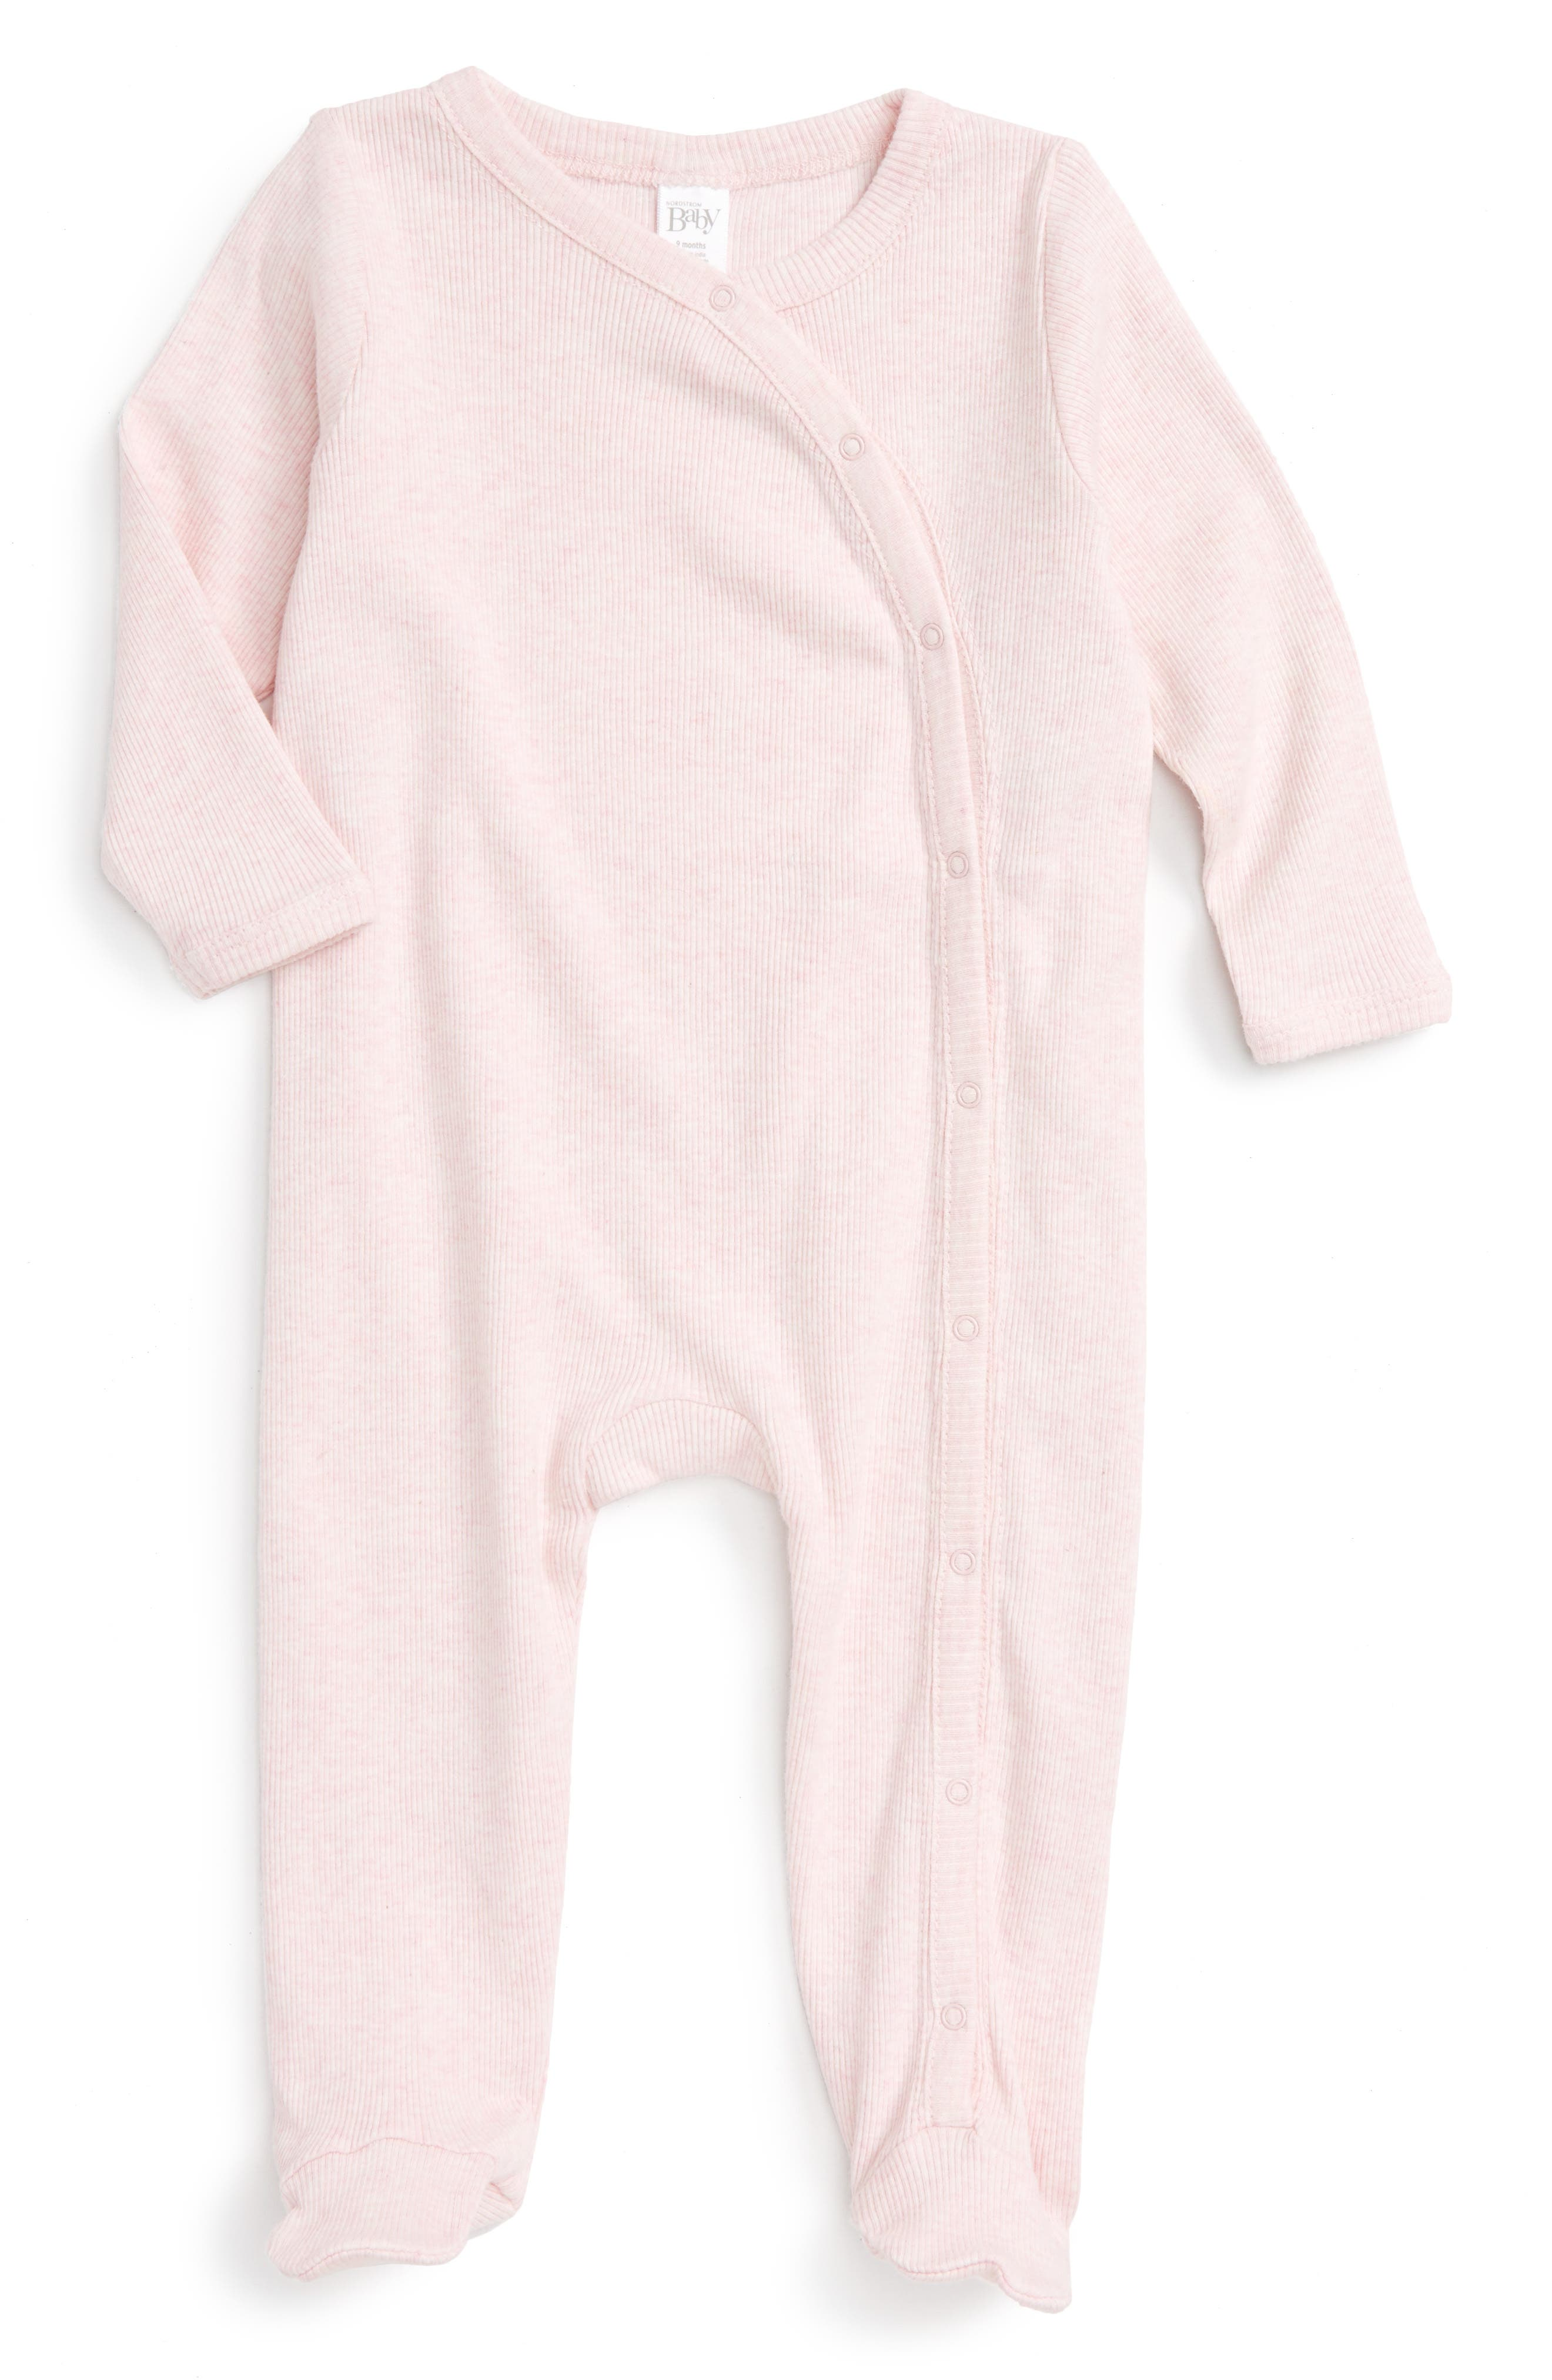 NORDSTROM BABY,                             Rib Knit Footie,                             Main thumbnail 1, color,                             PINK BABY HEATHER